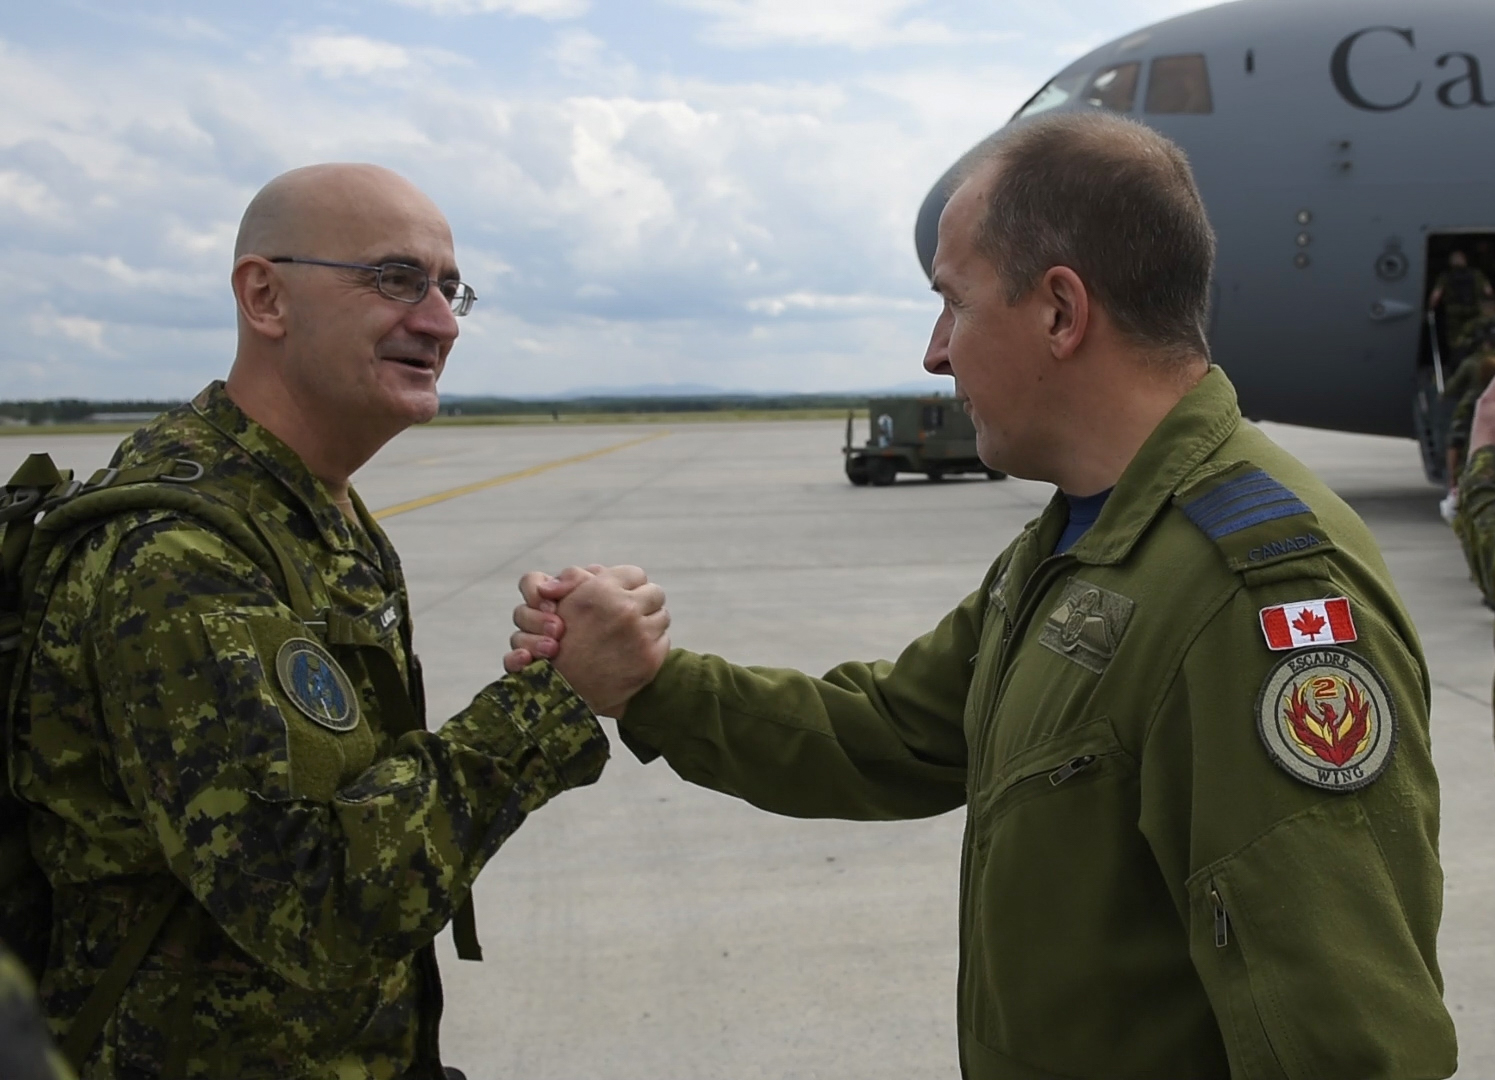 Colonel Luc Guillette (right), commander of 2 Wing Bagotville, Quebec, bids farewell to Chief Warrant Officer, Jean Lavoie, chief warrant officer of the Airfield Activation Surge Team (AFAST), as he departs from Bagotville enroute to Romania on August 11, 2017. PHOTO: Master Corporal Louis Brunet, BN25-2017-0484-015